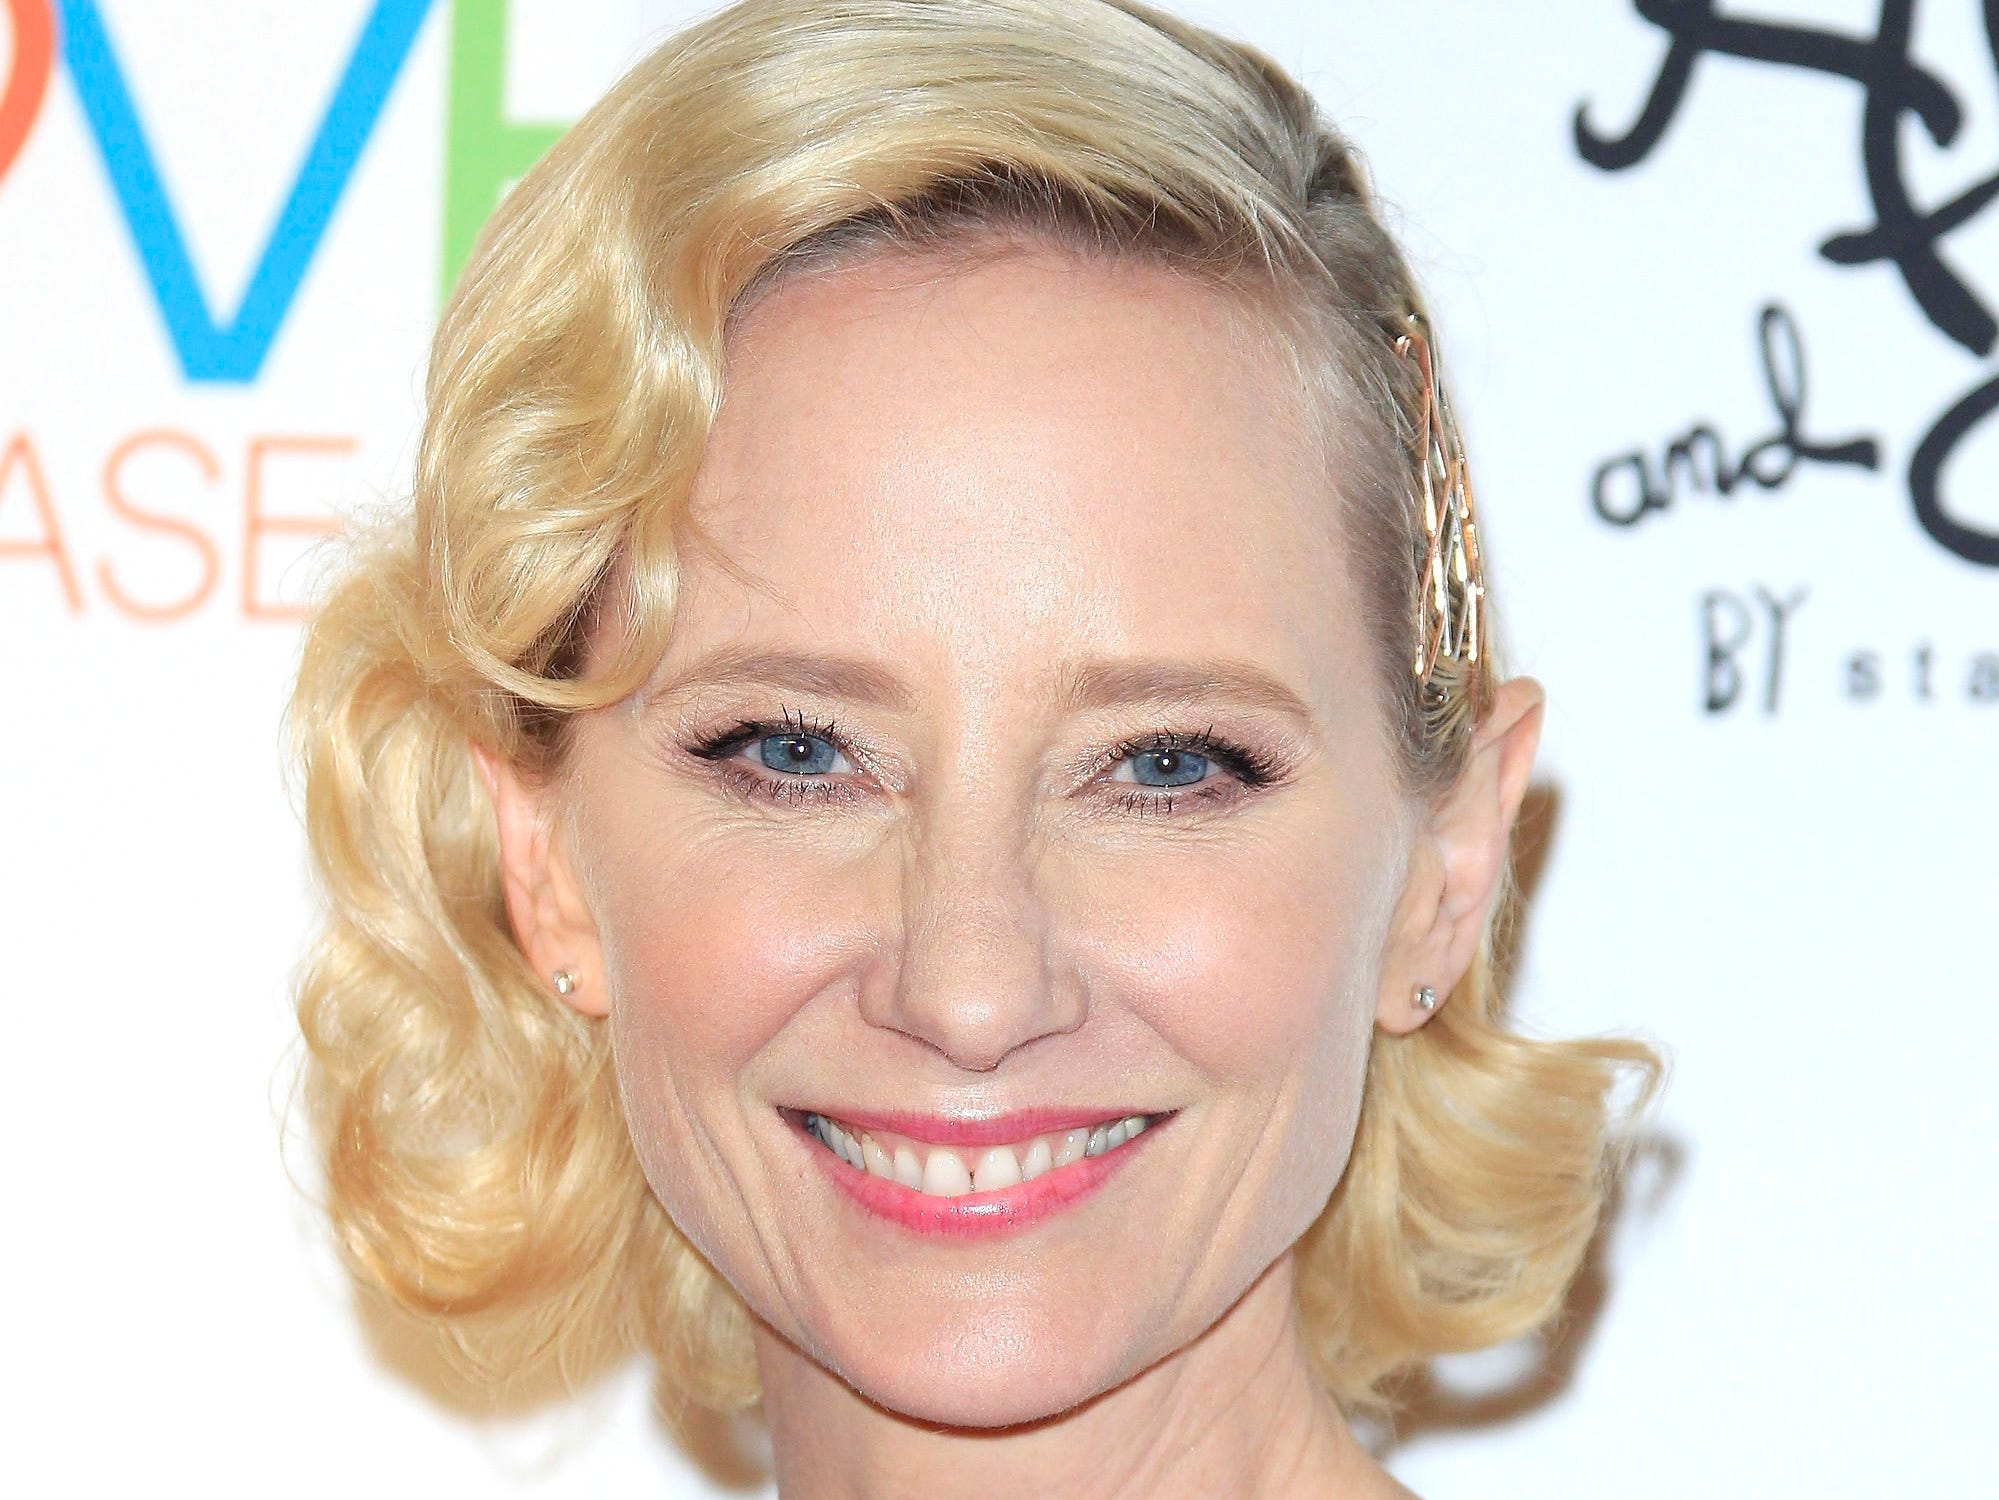 Anne Heche turns 50 on May 25.